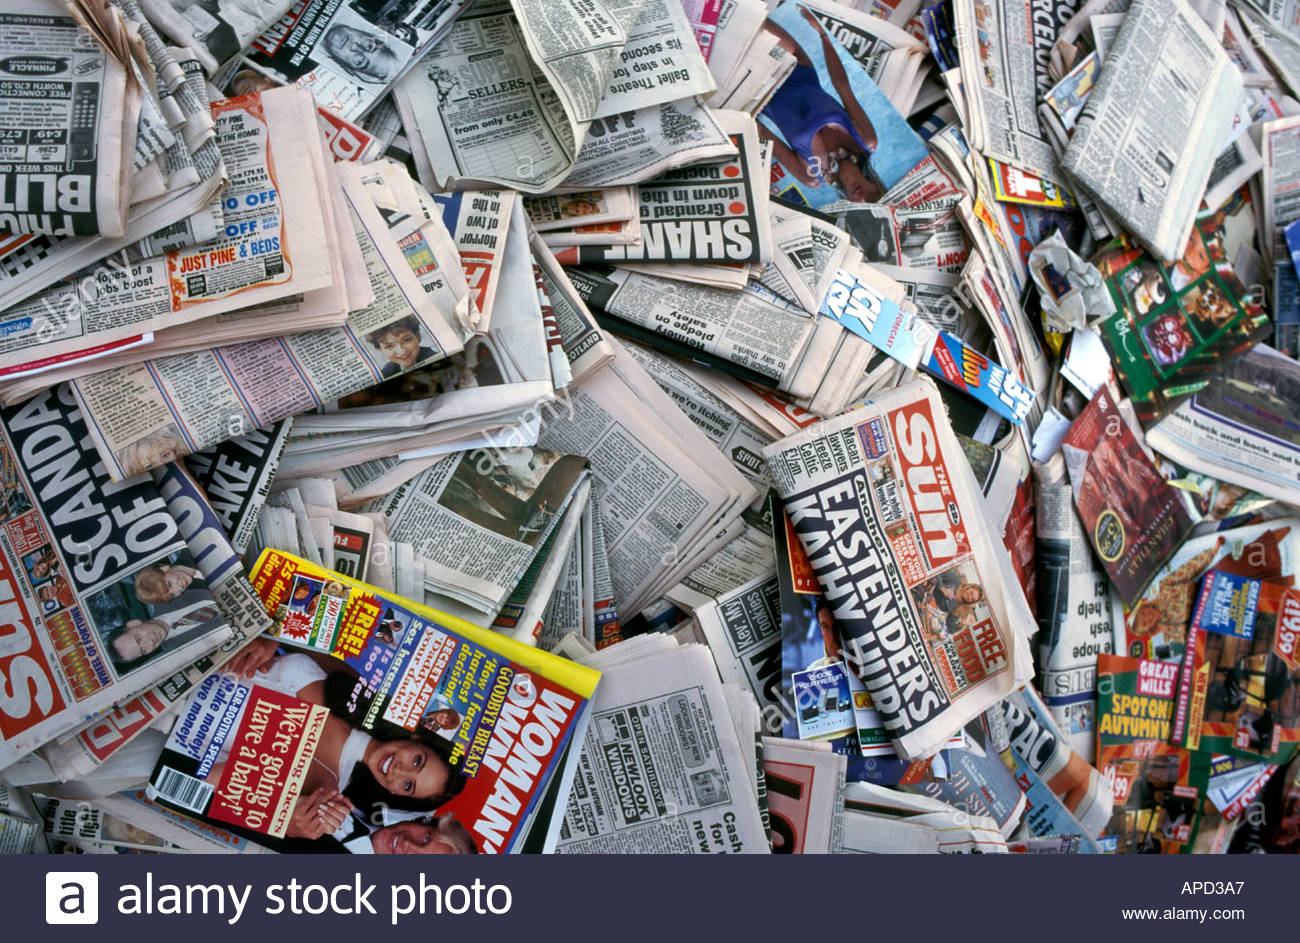 Pile of newspapers and magazines for recycling uk stock for How to recycle old magazines